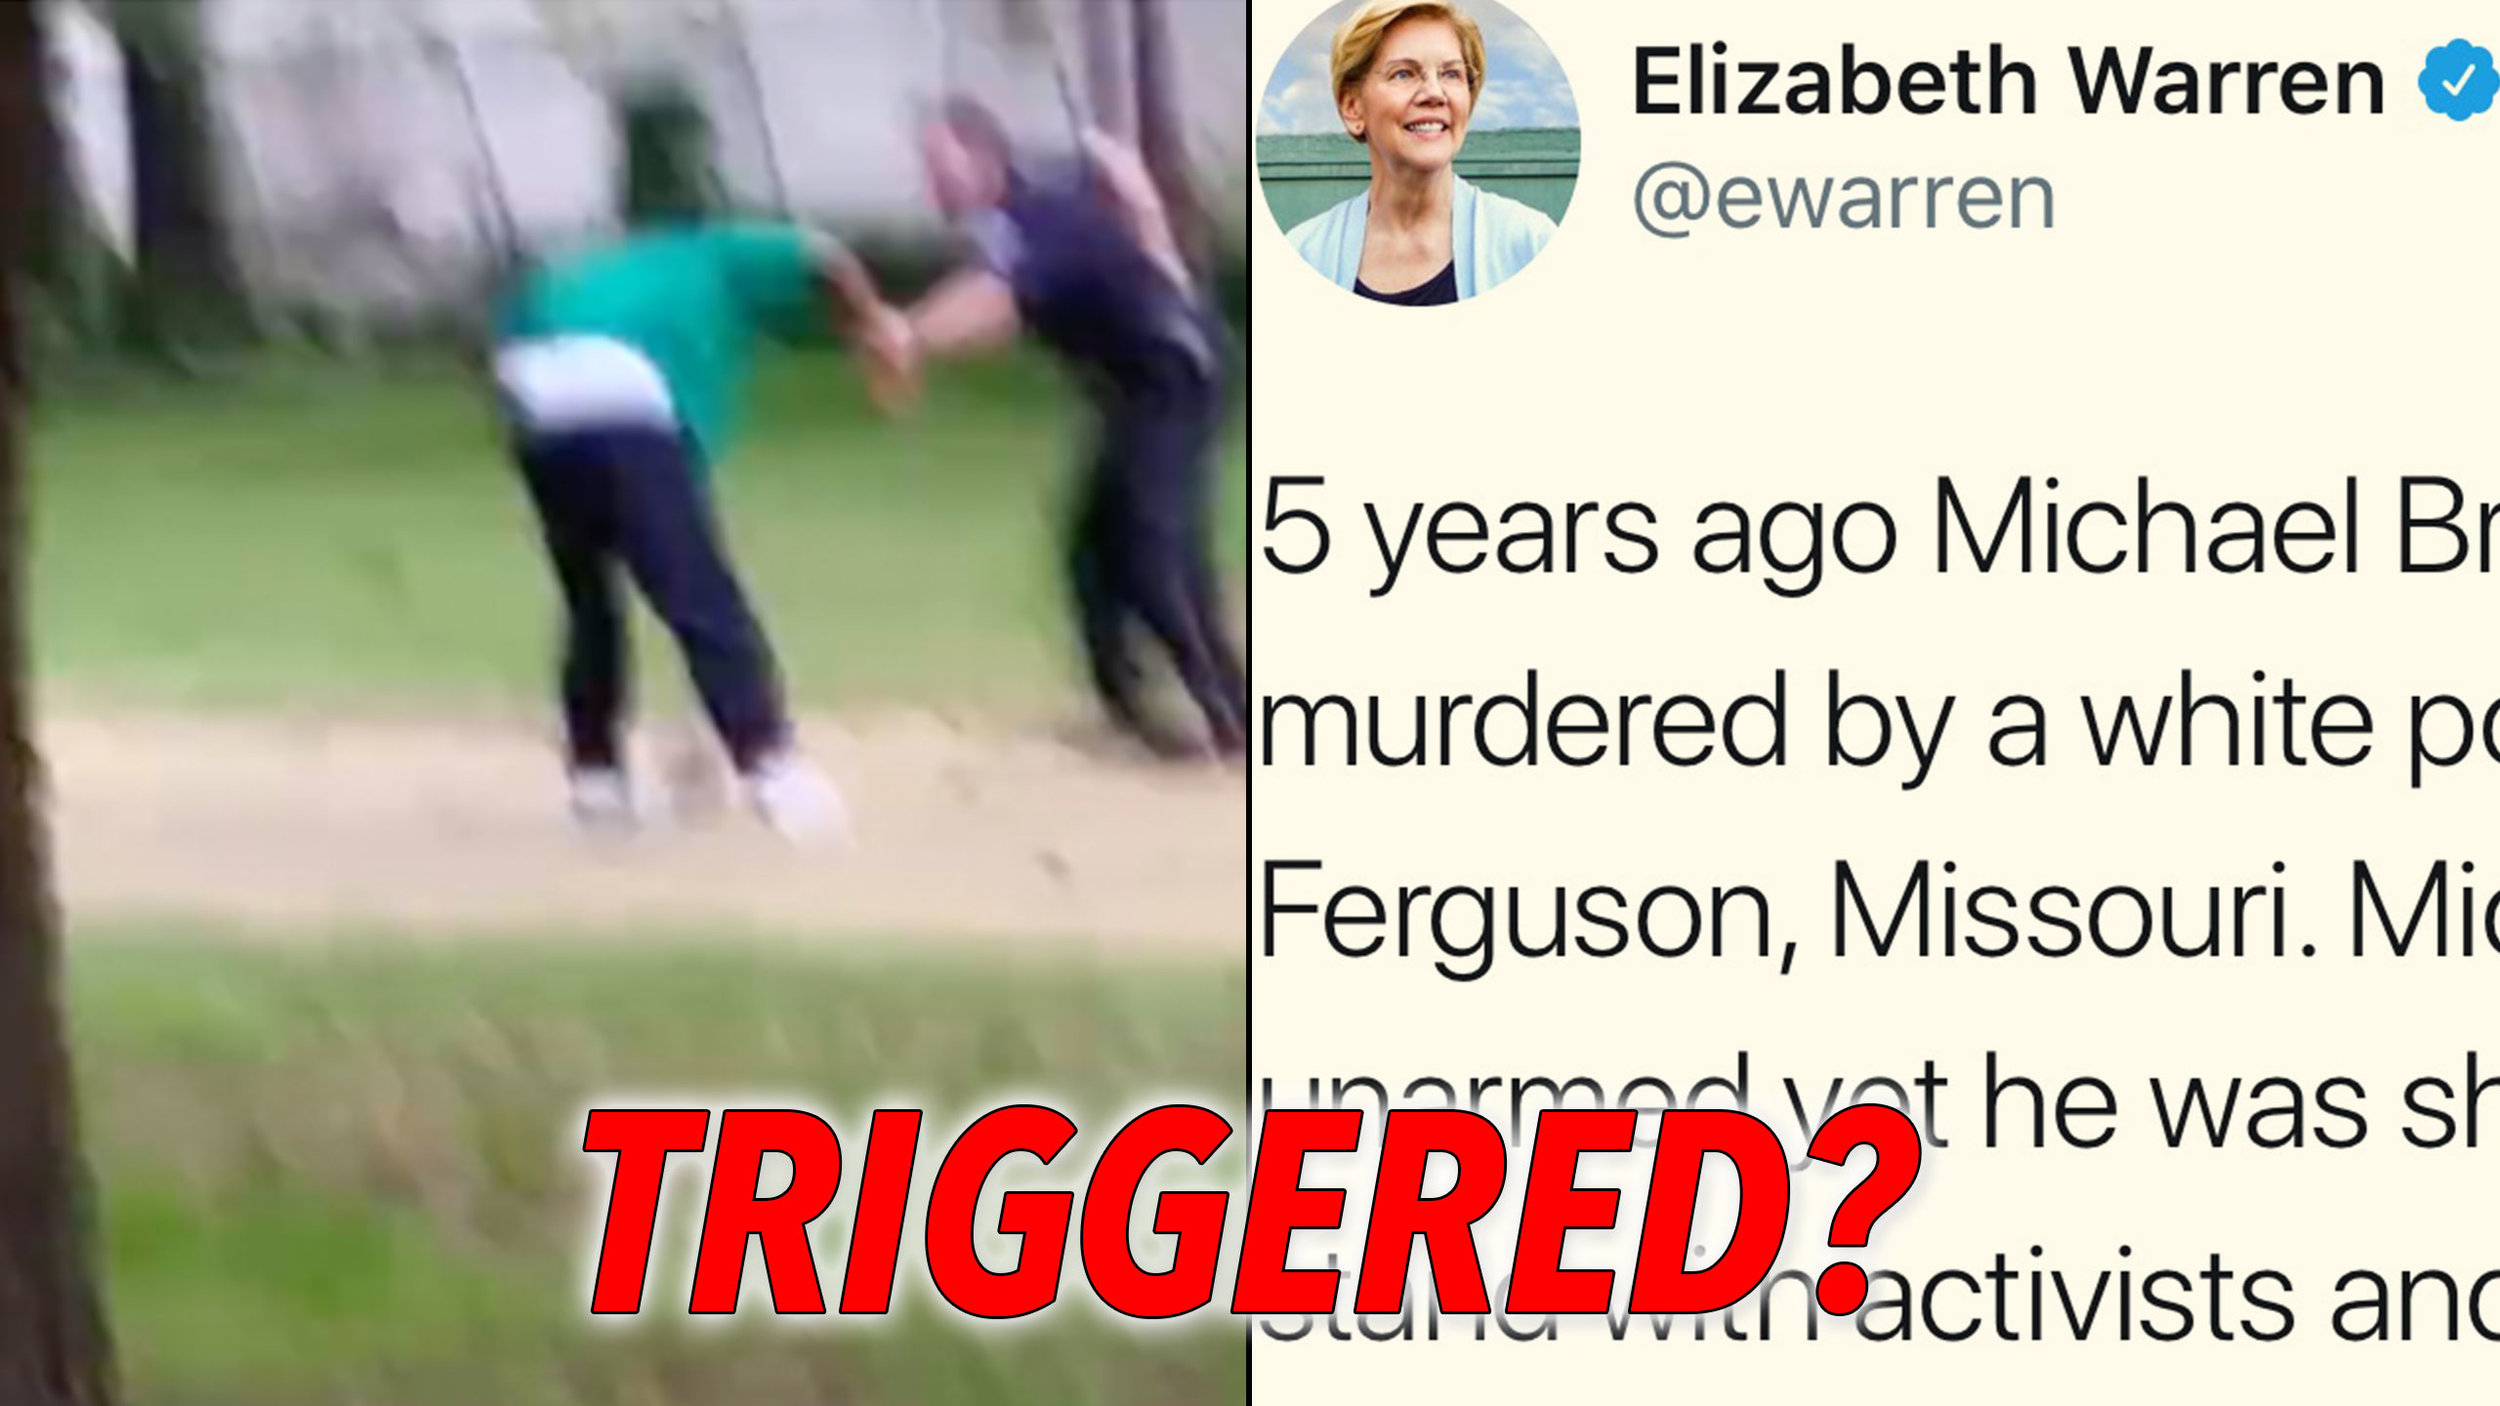 """Triggering"" incidents: Black criminal Walter Scott fighting off then-Officer Michael Slager before being shot in the back and killed. Elizabeth Warren tweets out a libelous lie saying Michael Brown was ""murdered"" by a white police officer in Ferguson, MO, four years after evidence came out showing the killing was in self-defense."